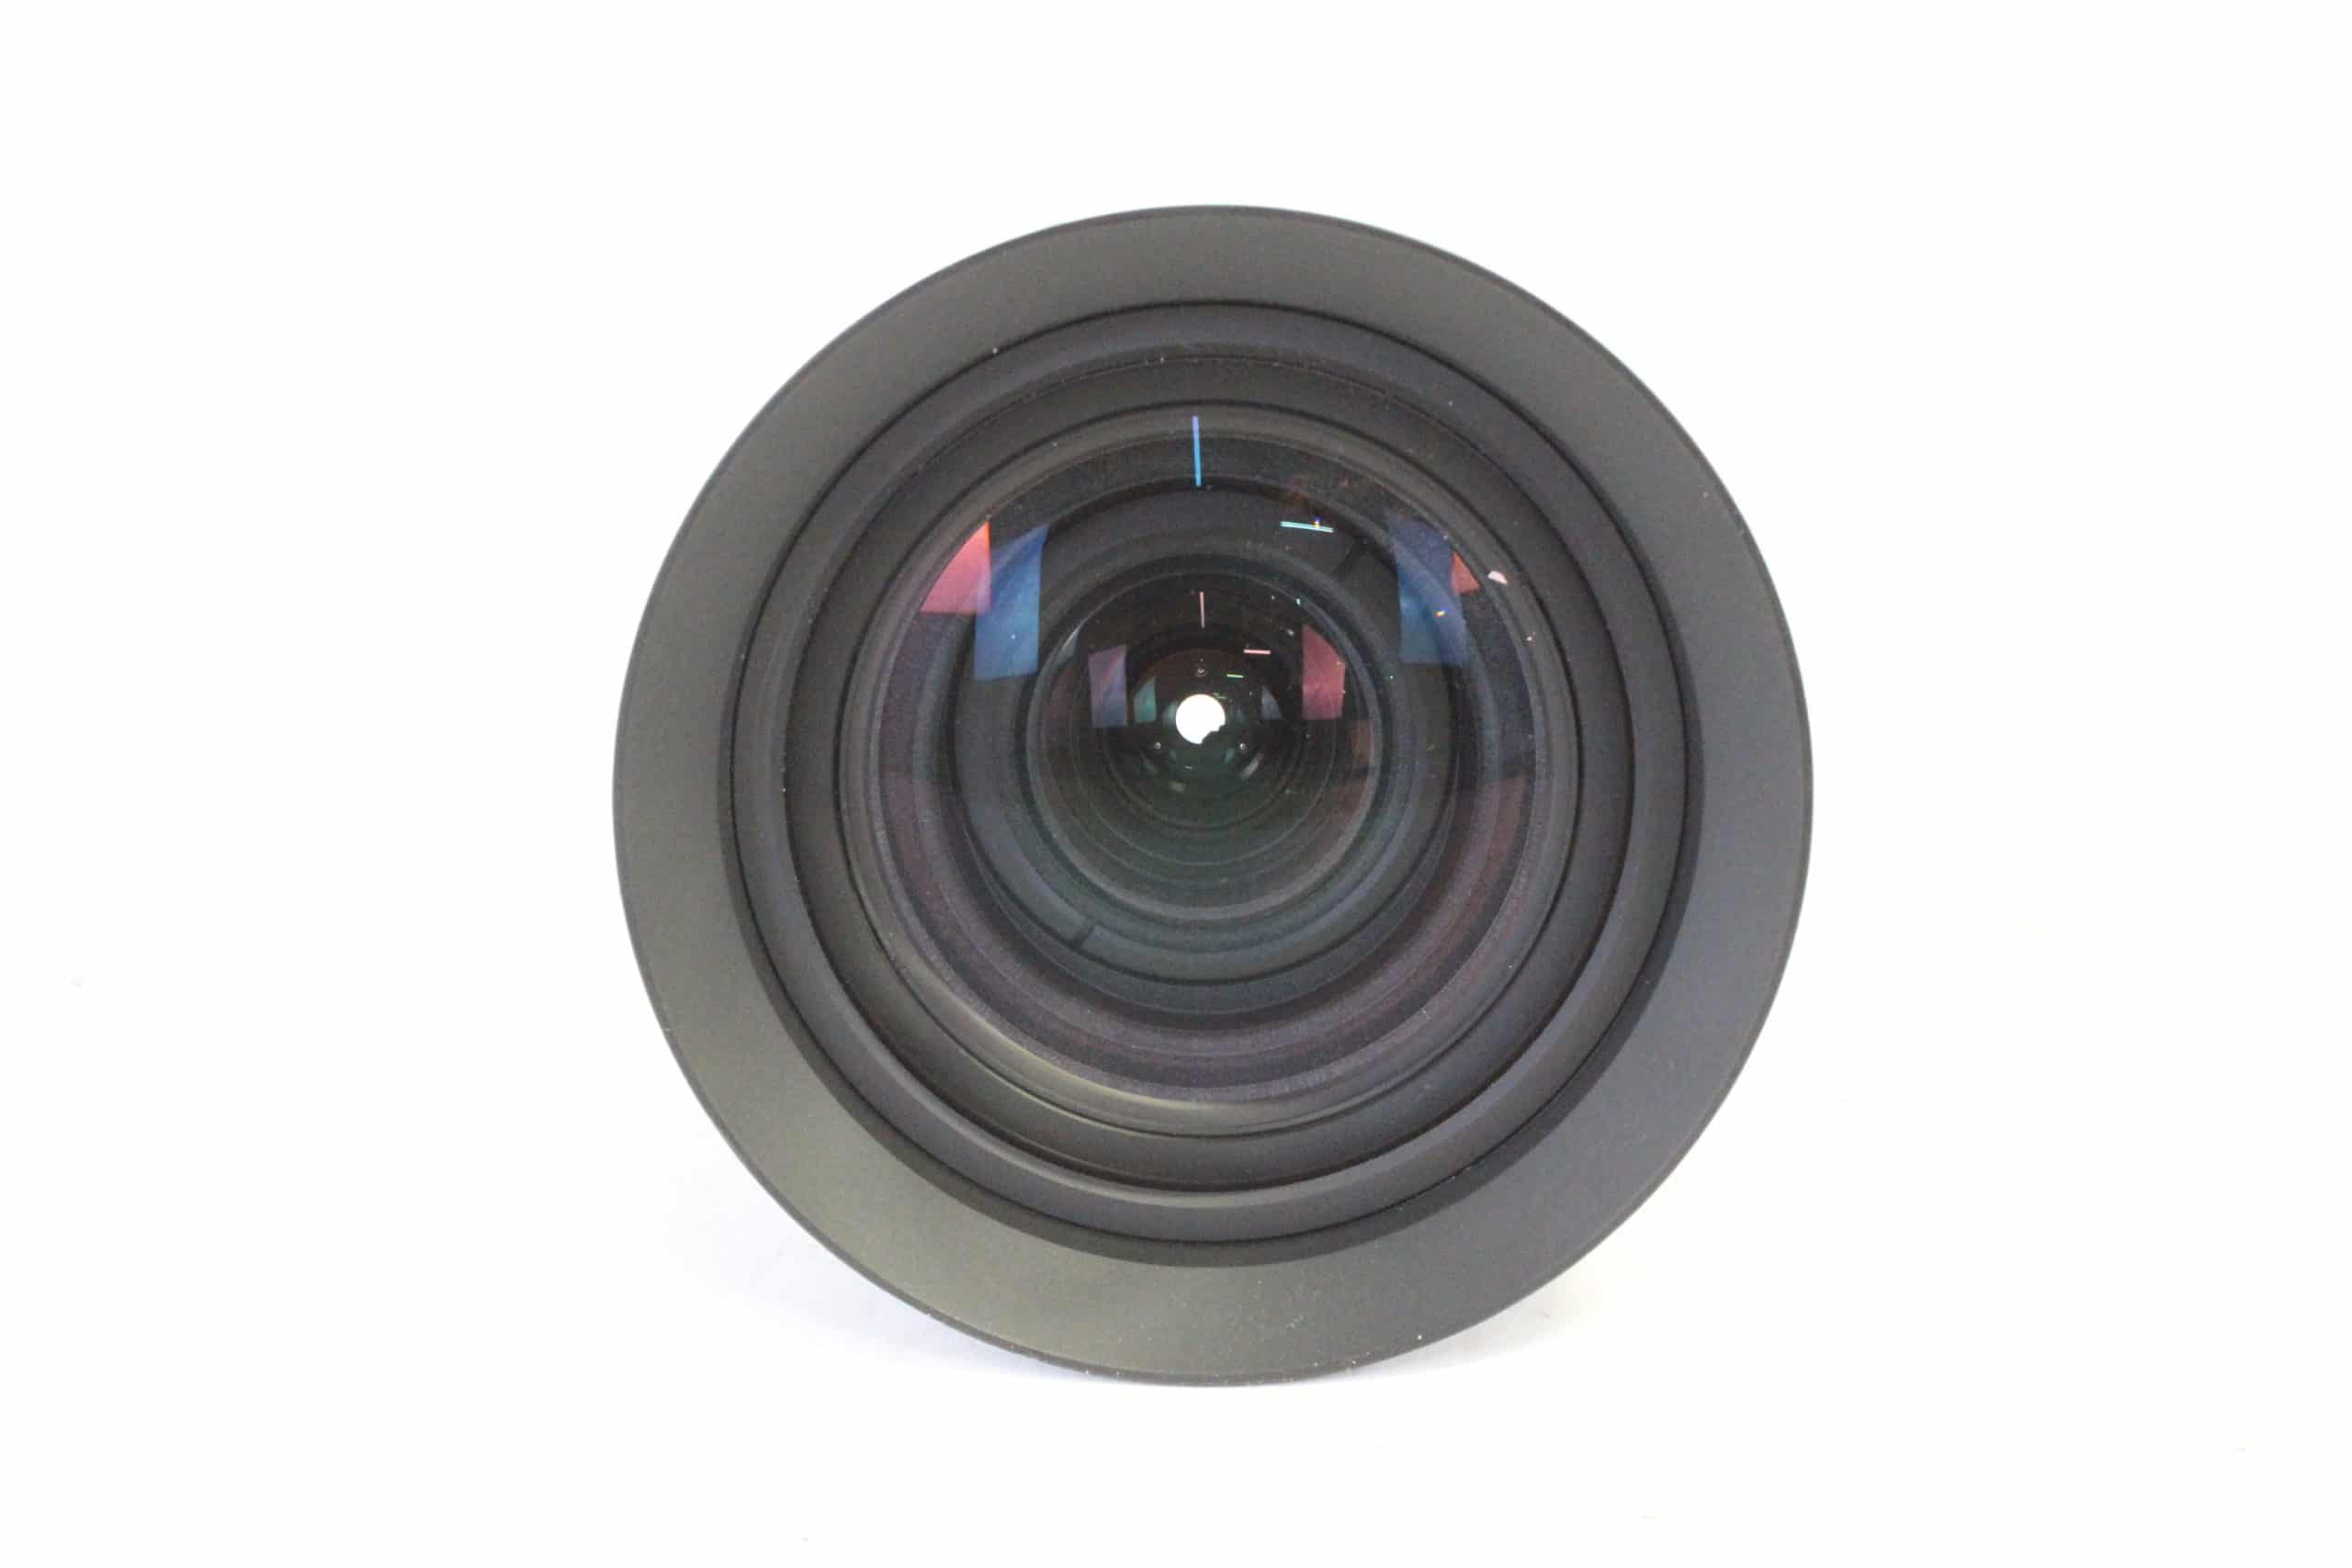 christie-133-100102-01-081-fixed-lens-w-hard-case FRONT1